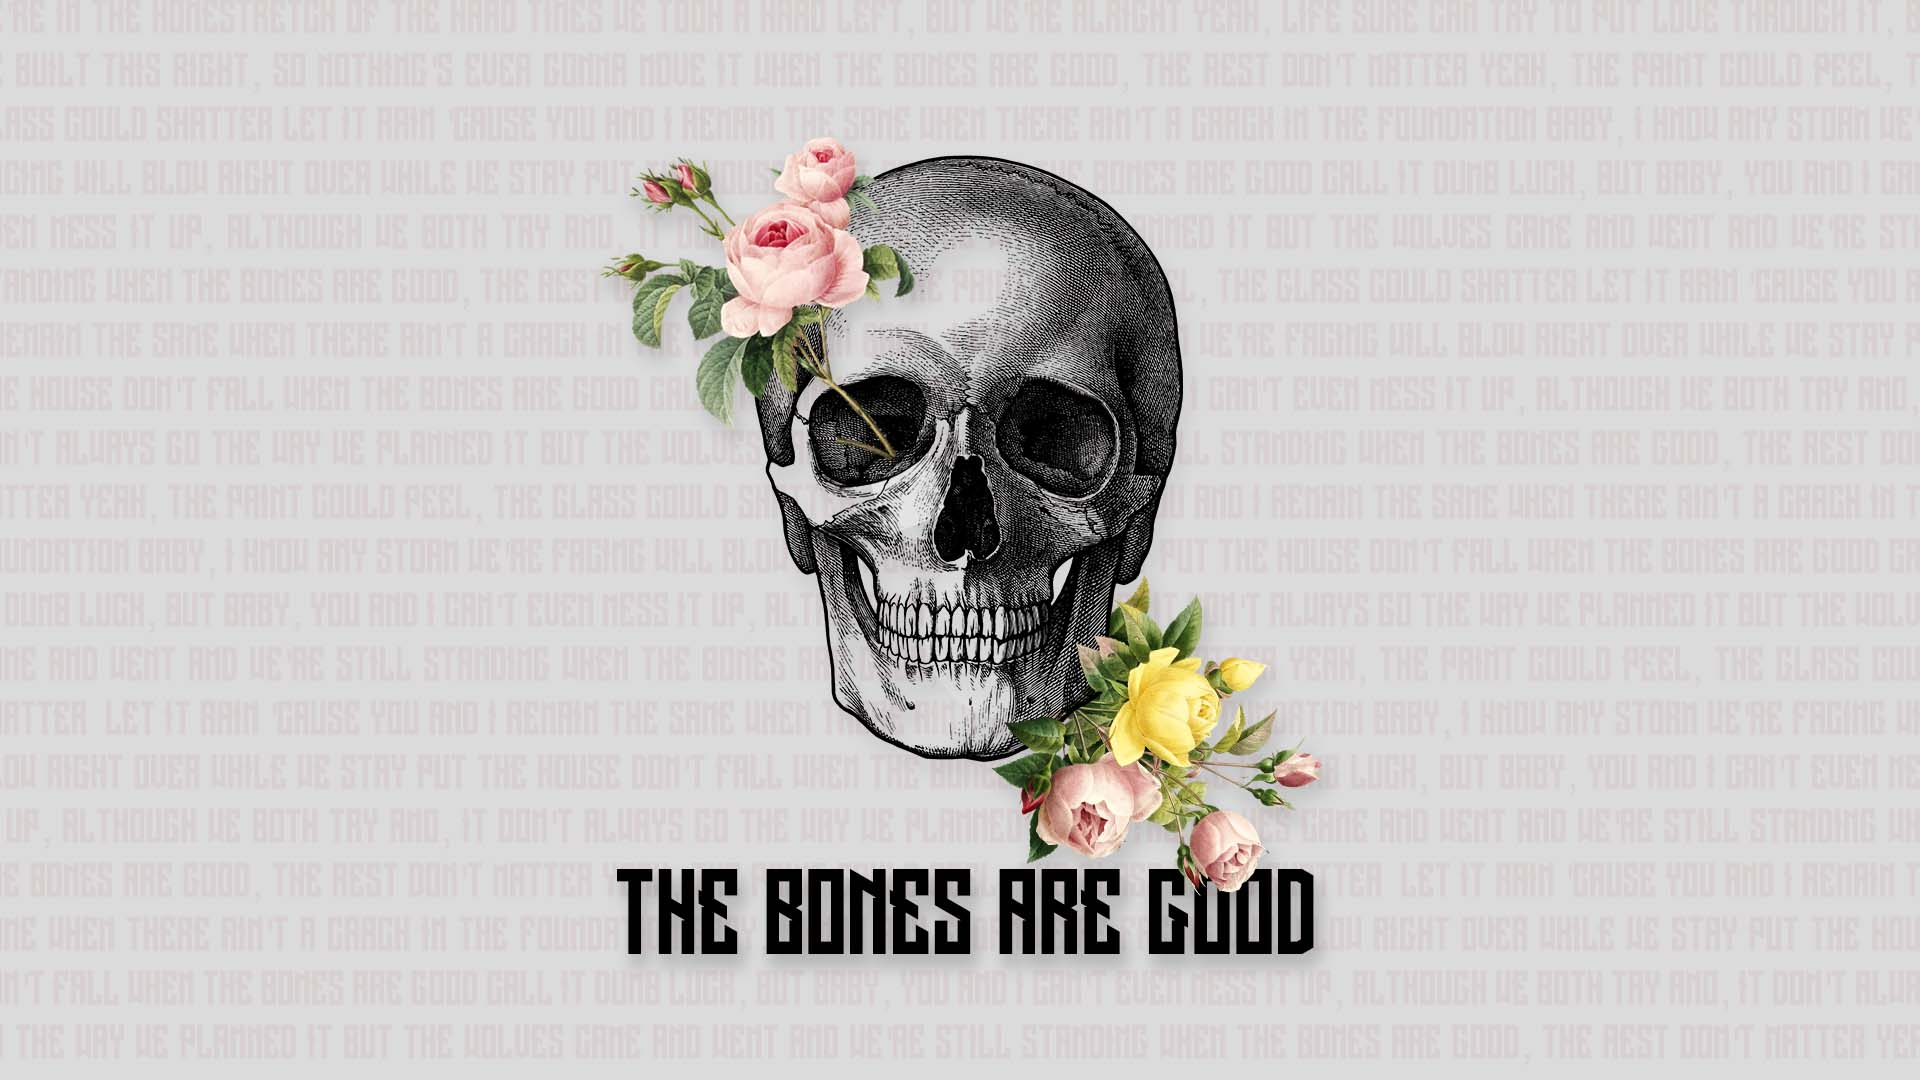 THE BONES ARE GOOD